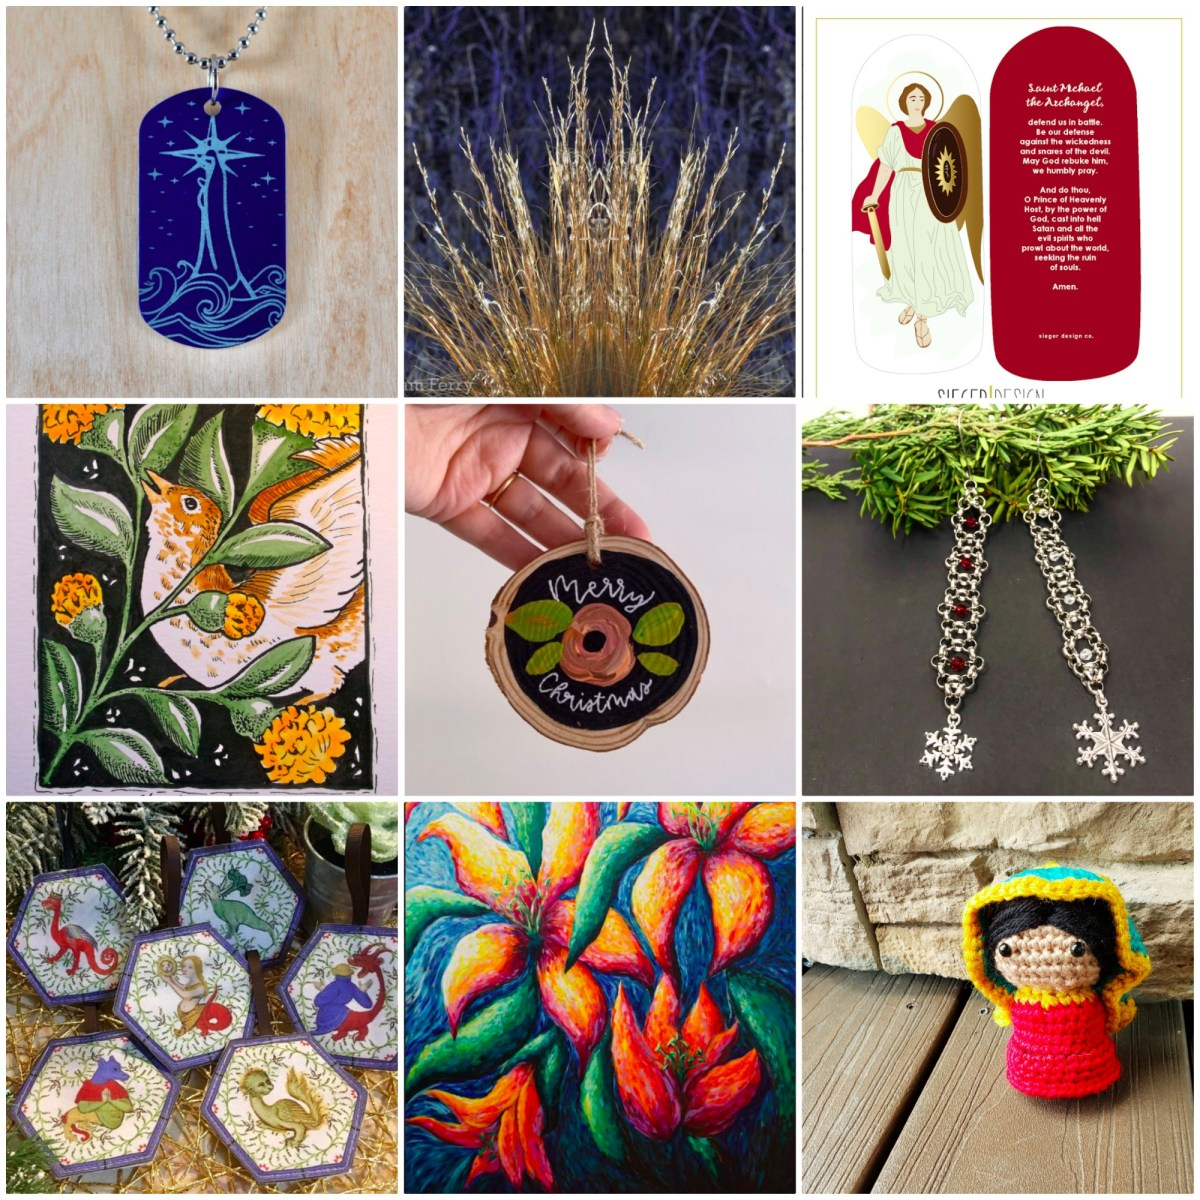 2019 Catholic fine art and handmade gift guide!